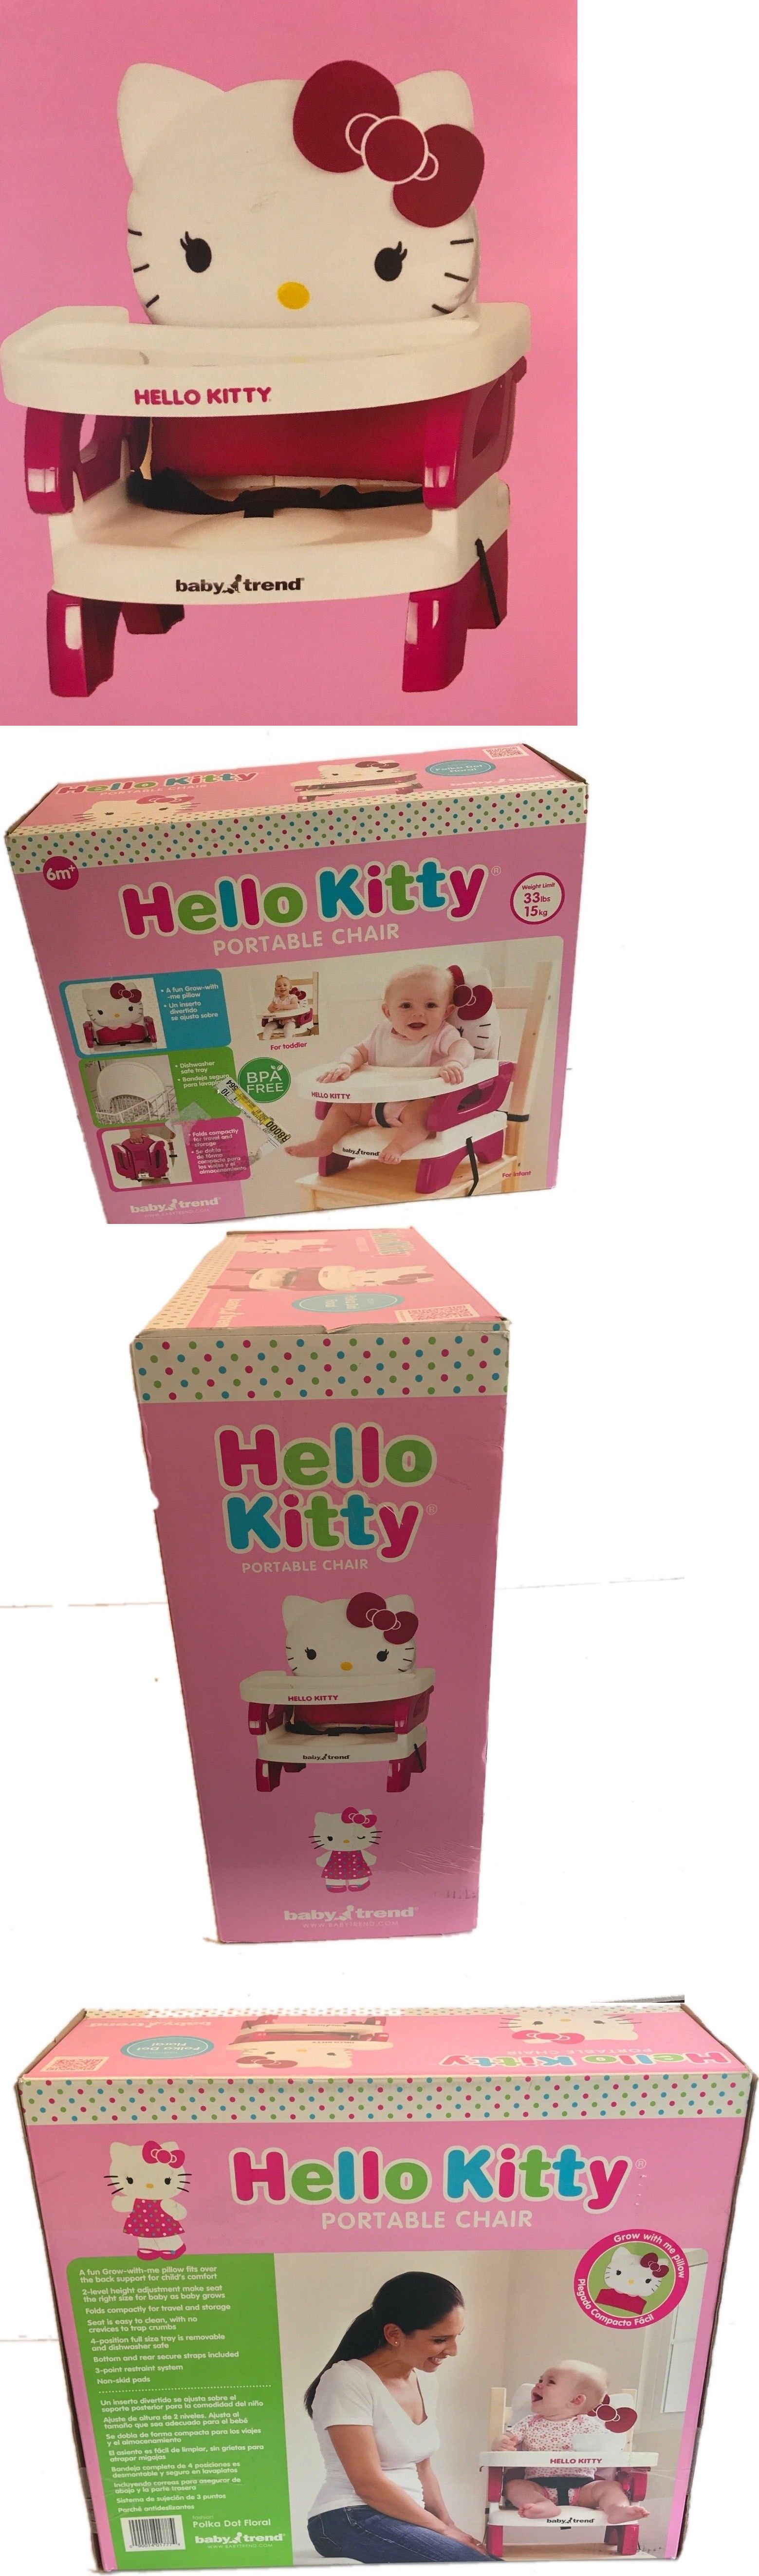 Hello Kitty High Chair Office Qatar Living Portable Seat Booster Girls Pink Baby Trend Chairs 2986 Feed New Buy It Now Only 49 95 On Ebay